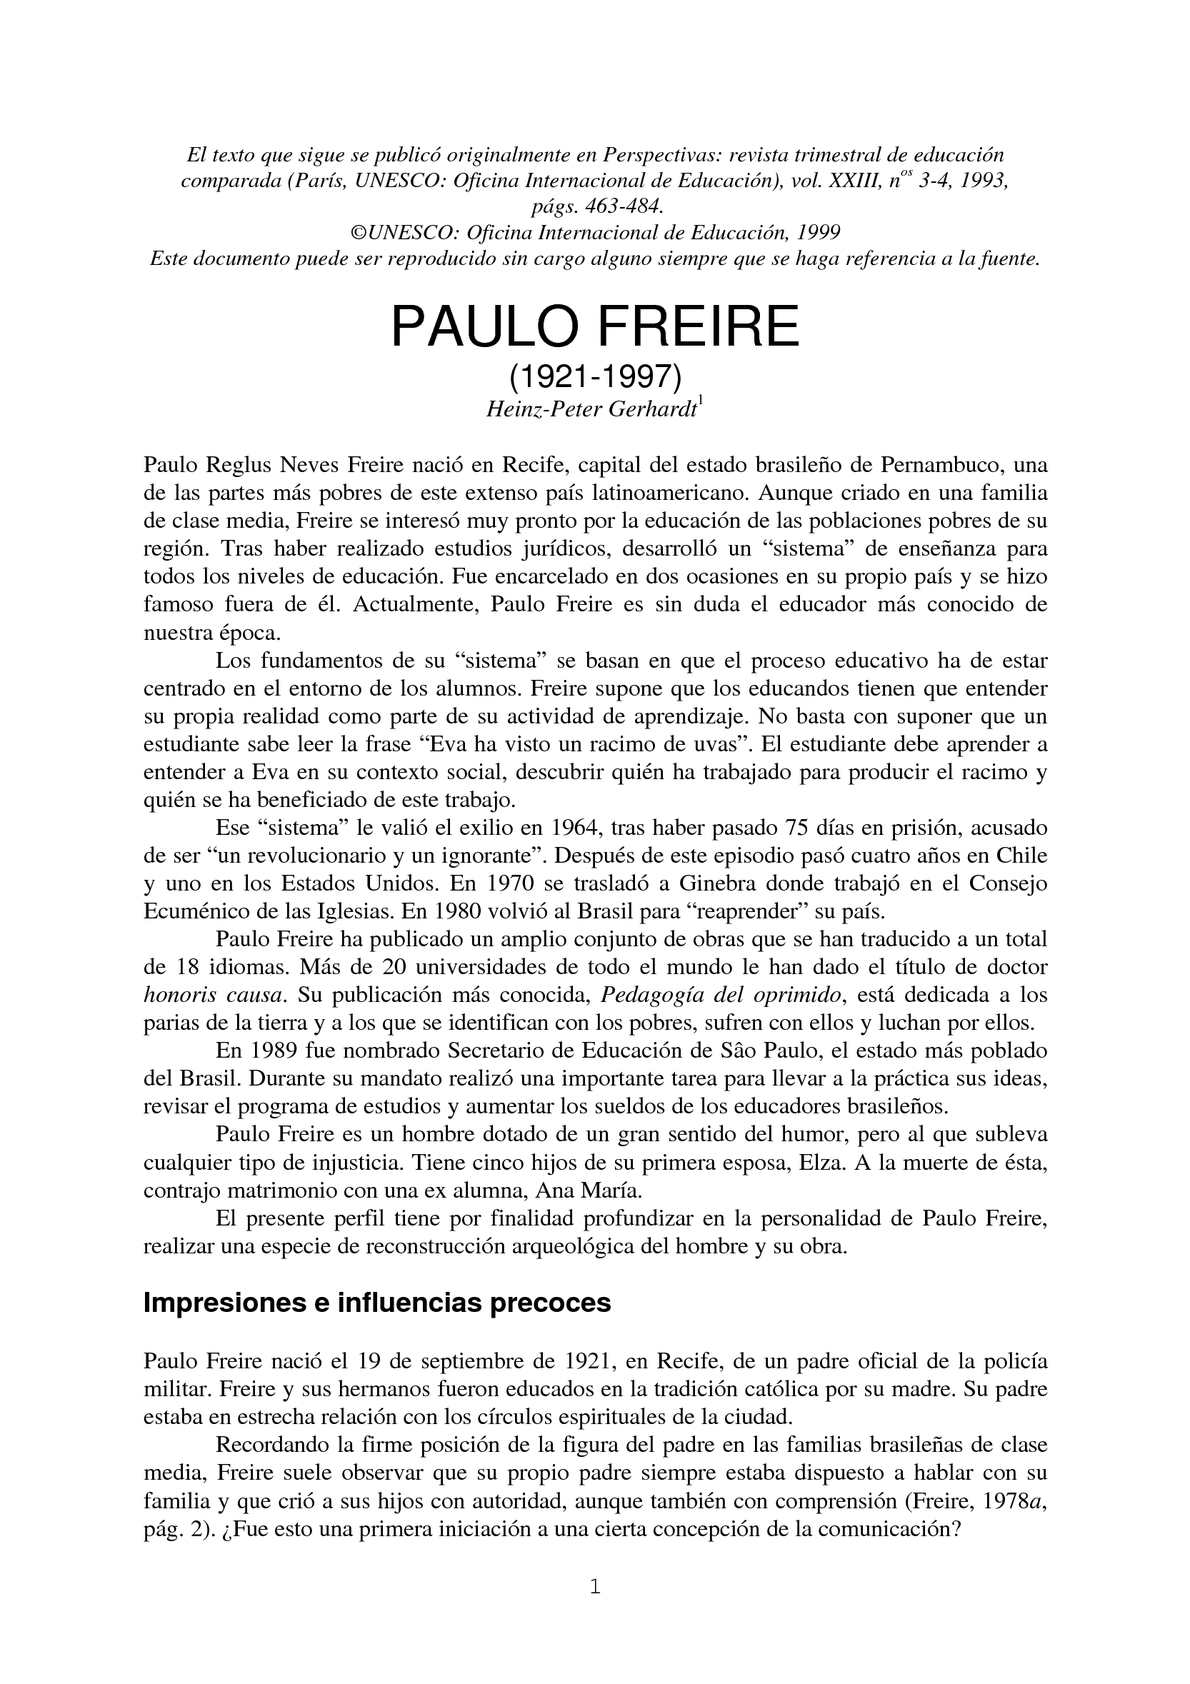 Paulo freire letter 6